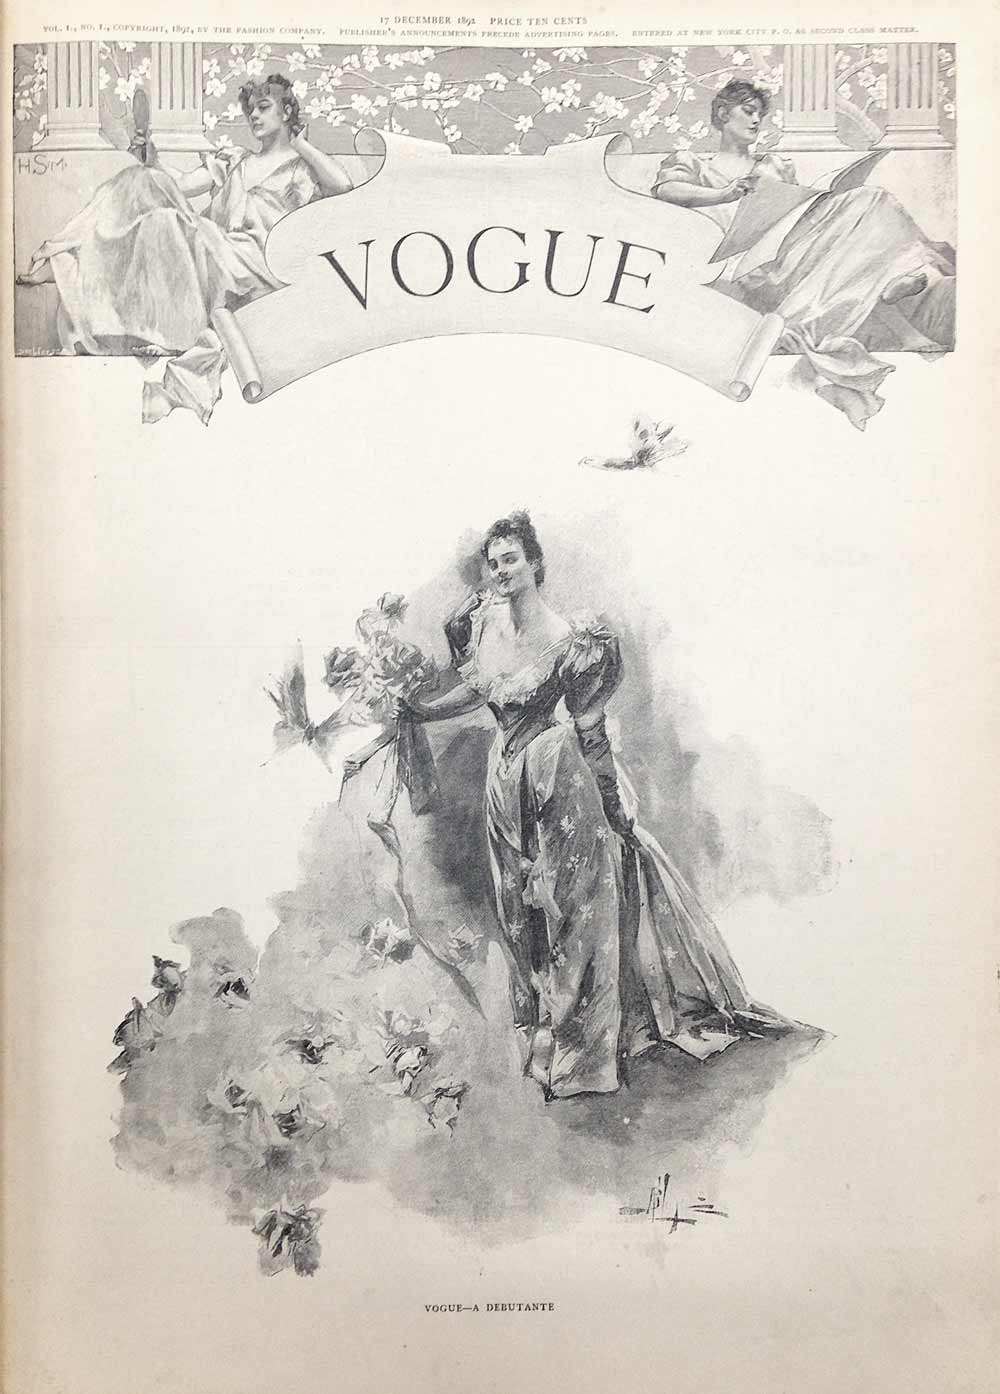 Vogue - first issue